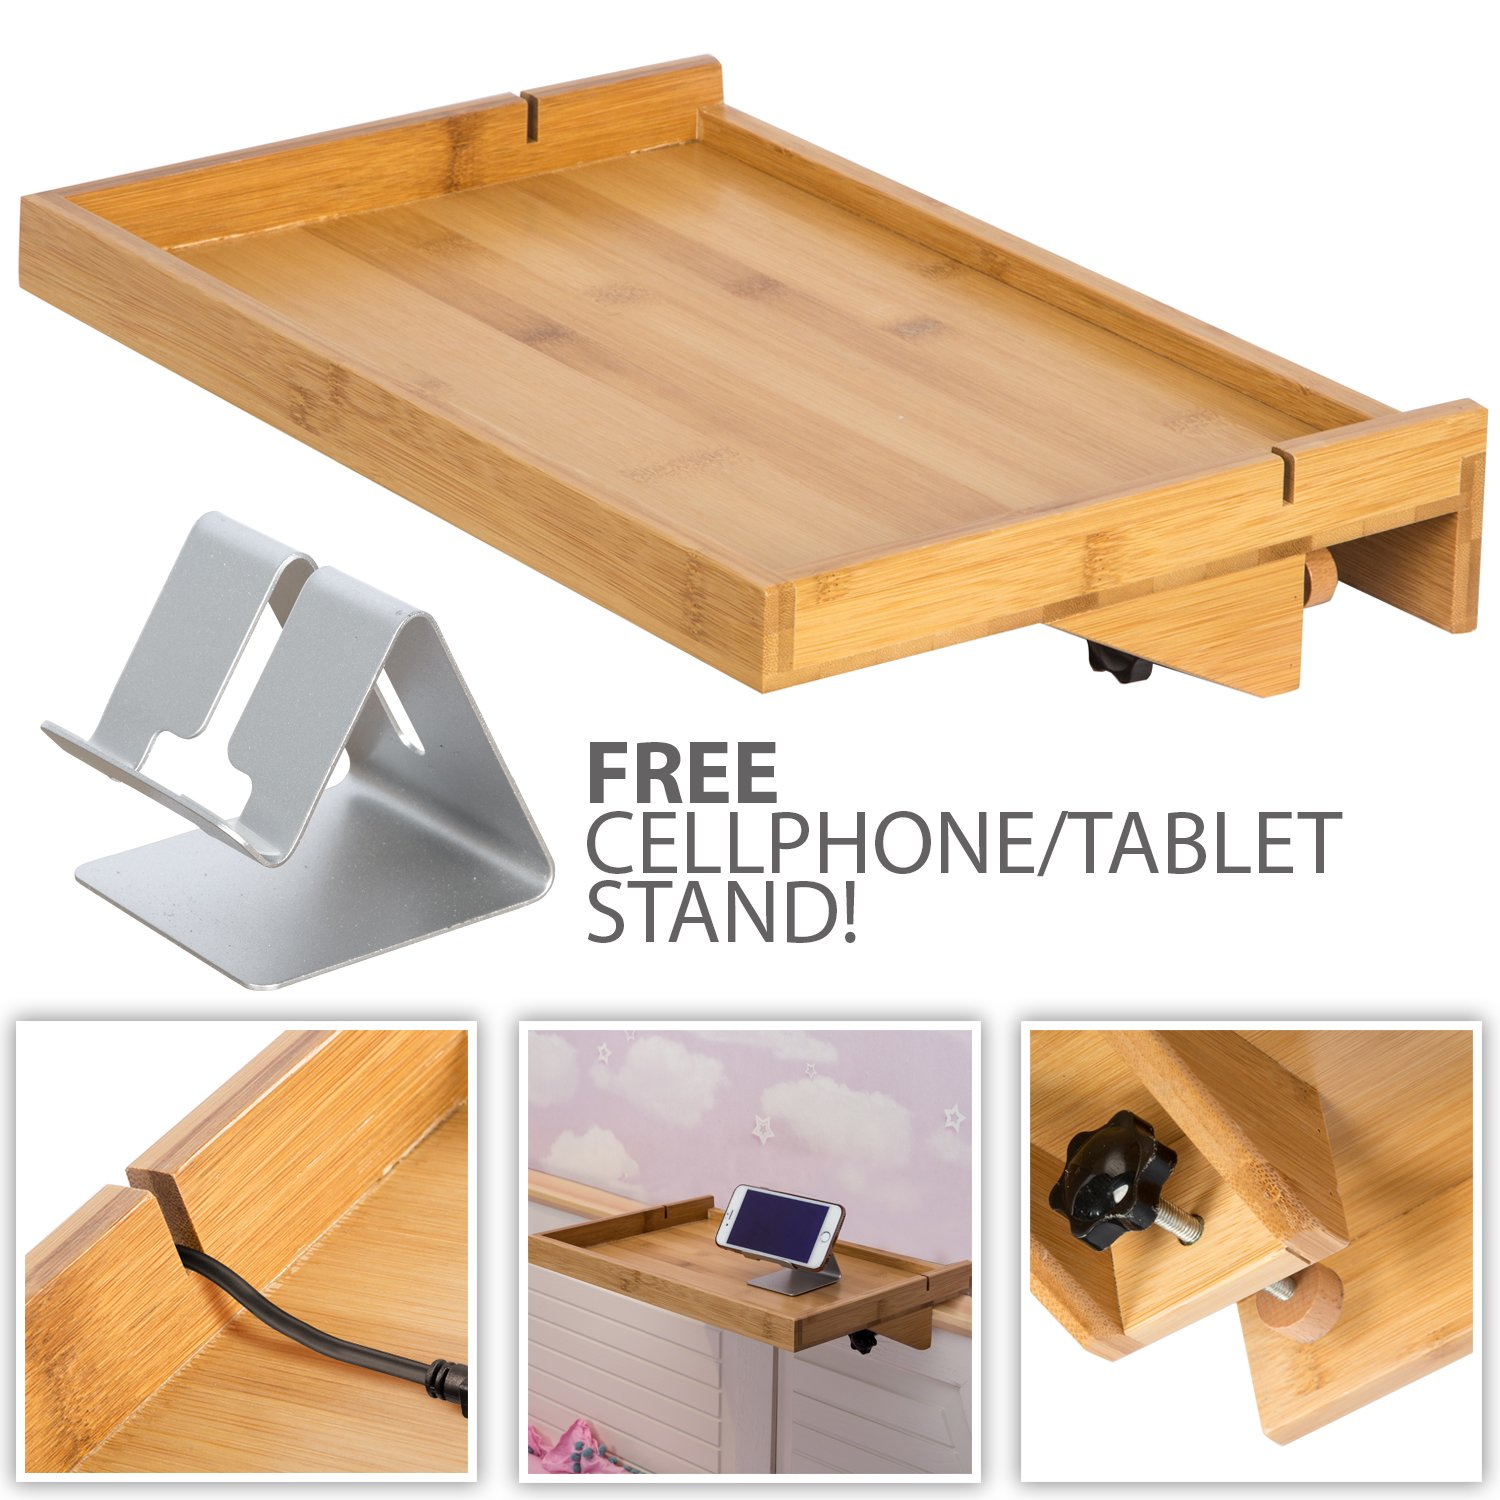 LifeSmart Bamboo Lacquered Bed Shelf with Bonus Phone Stand - Bigger Then The Original- 14.5 inches by 10.5 inches by 1 inch Shelf by LifeSmart